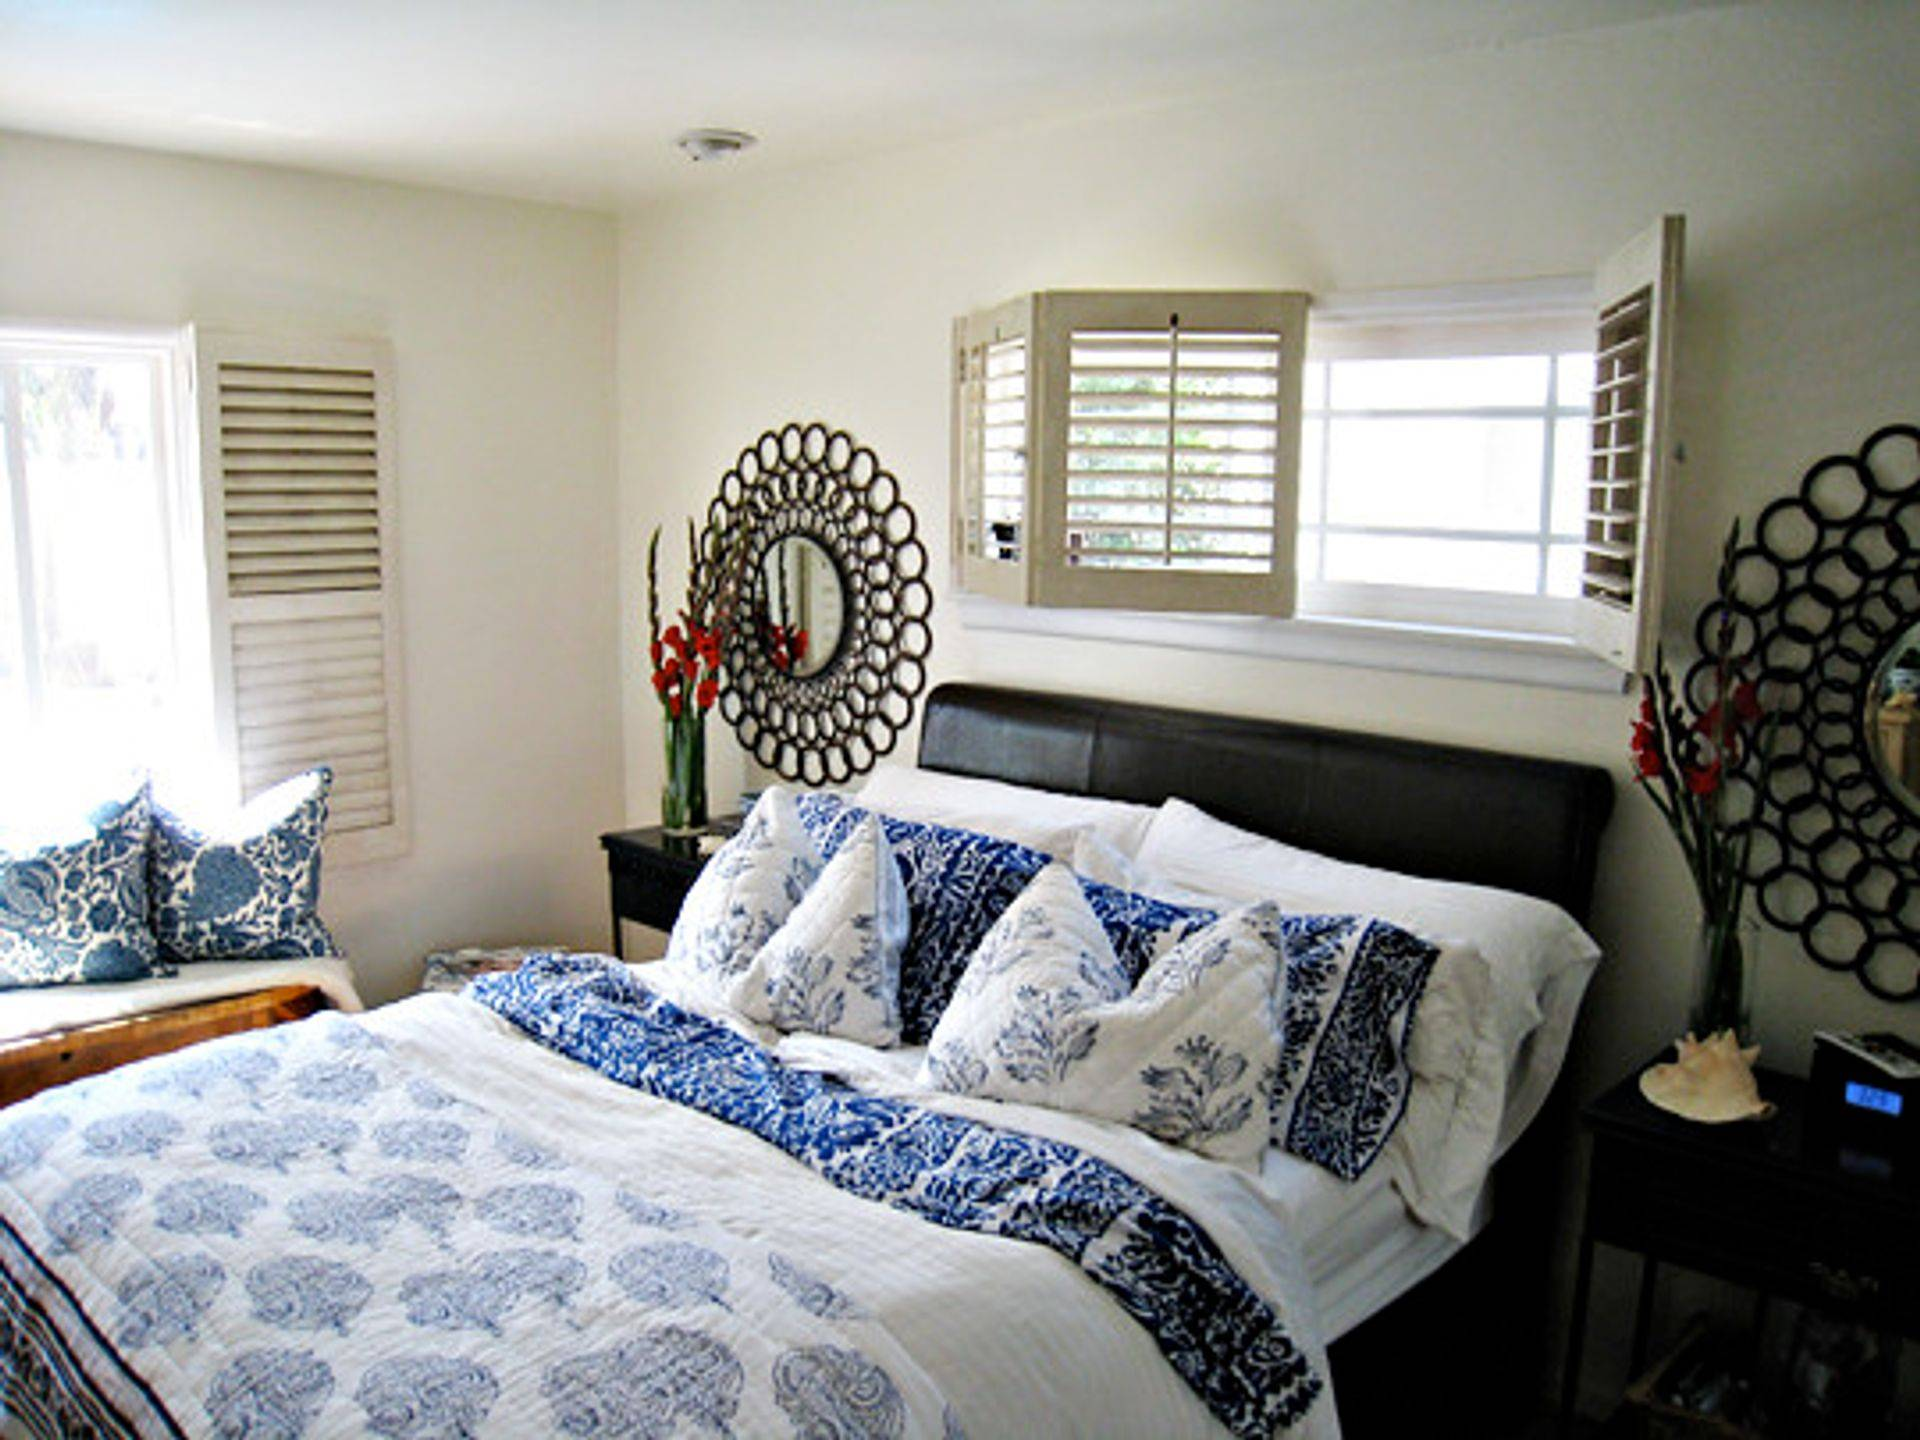 Detailed home cleaning is our expertise